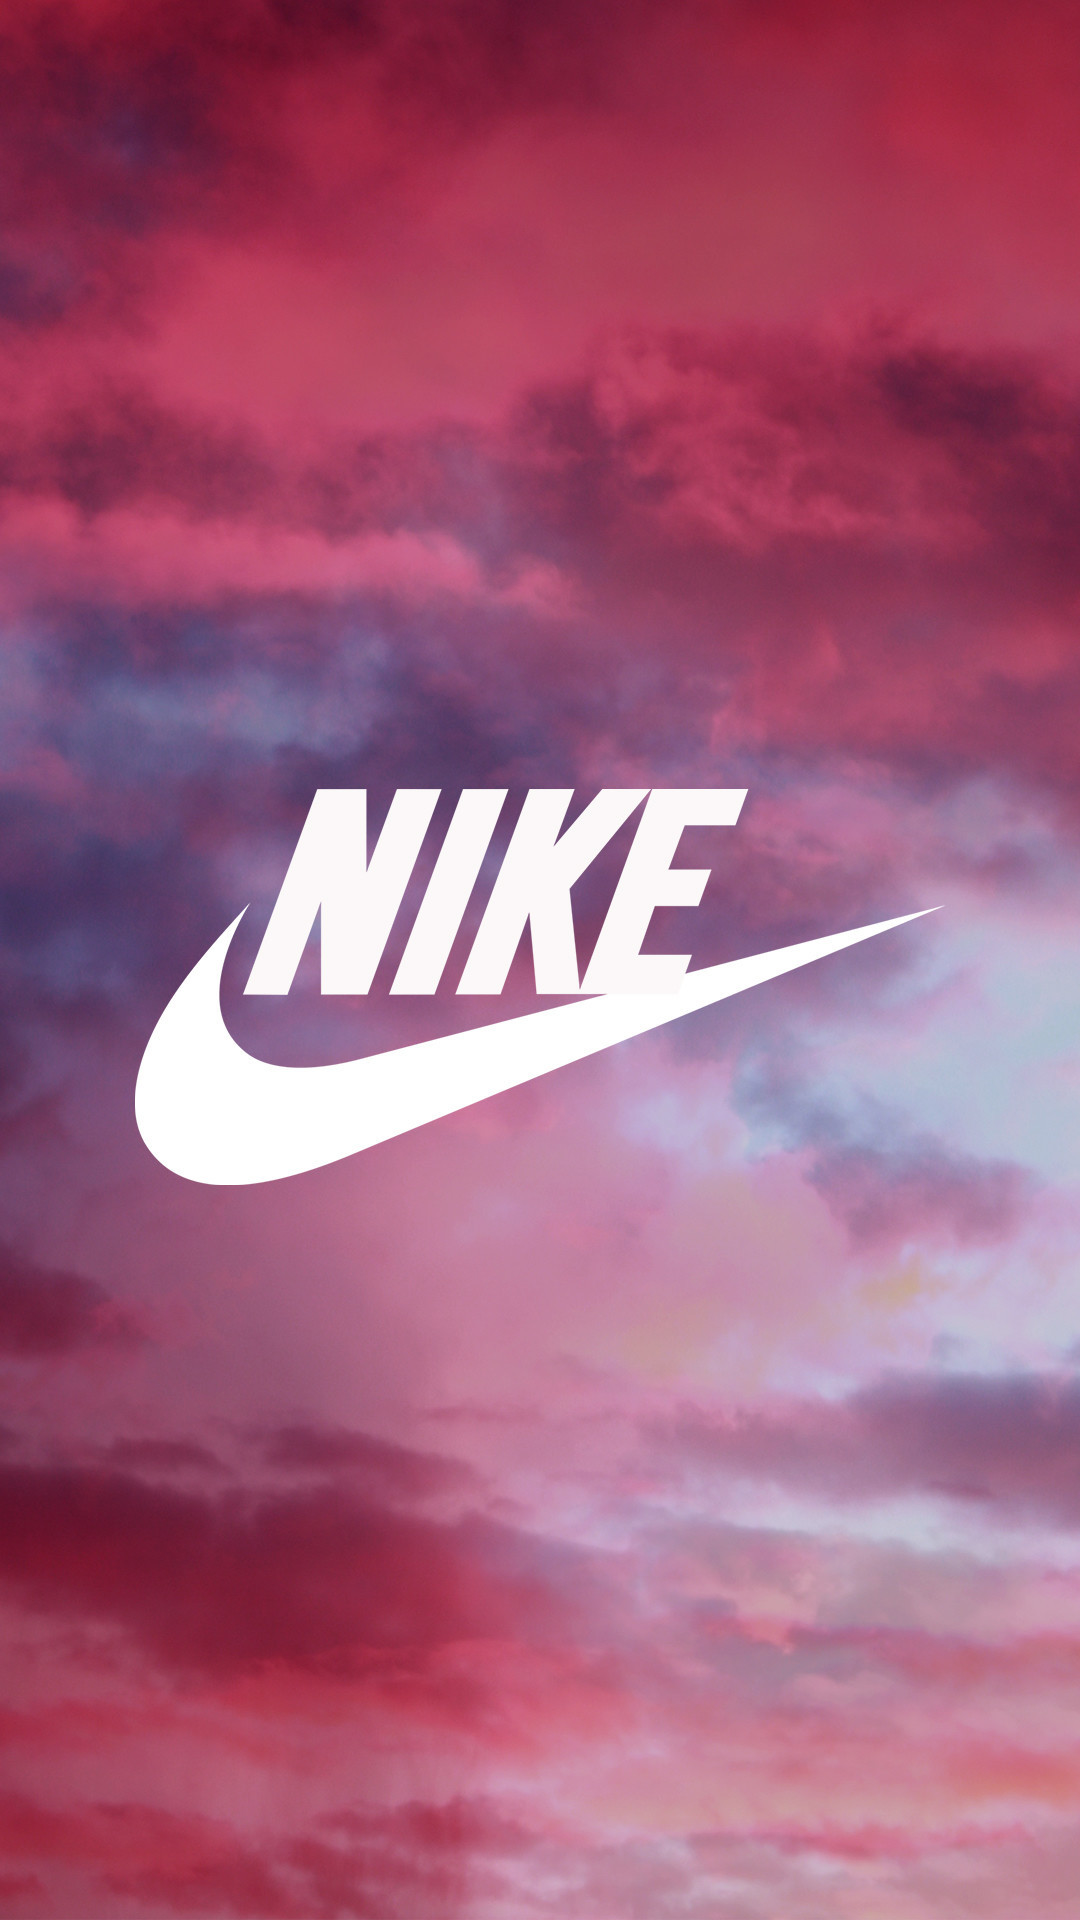 1080x1920 nike sign wallpaper Pink Nike Wallpaper ·①